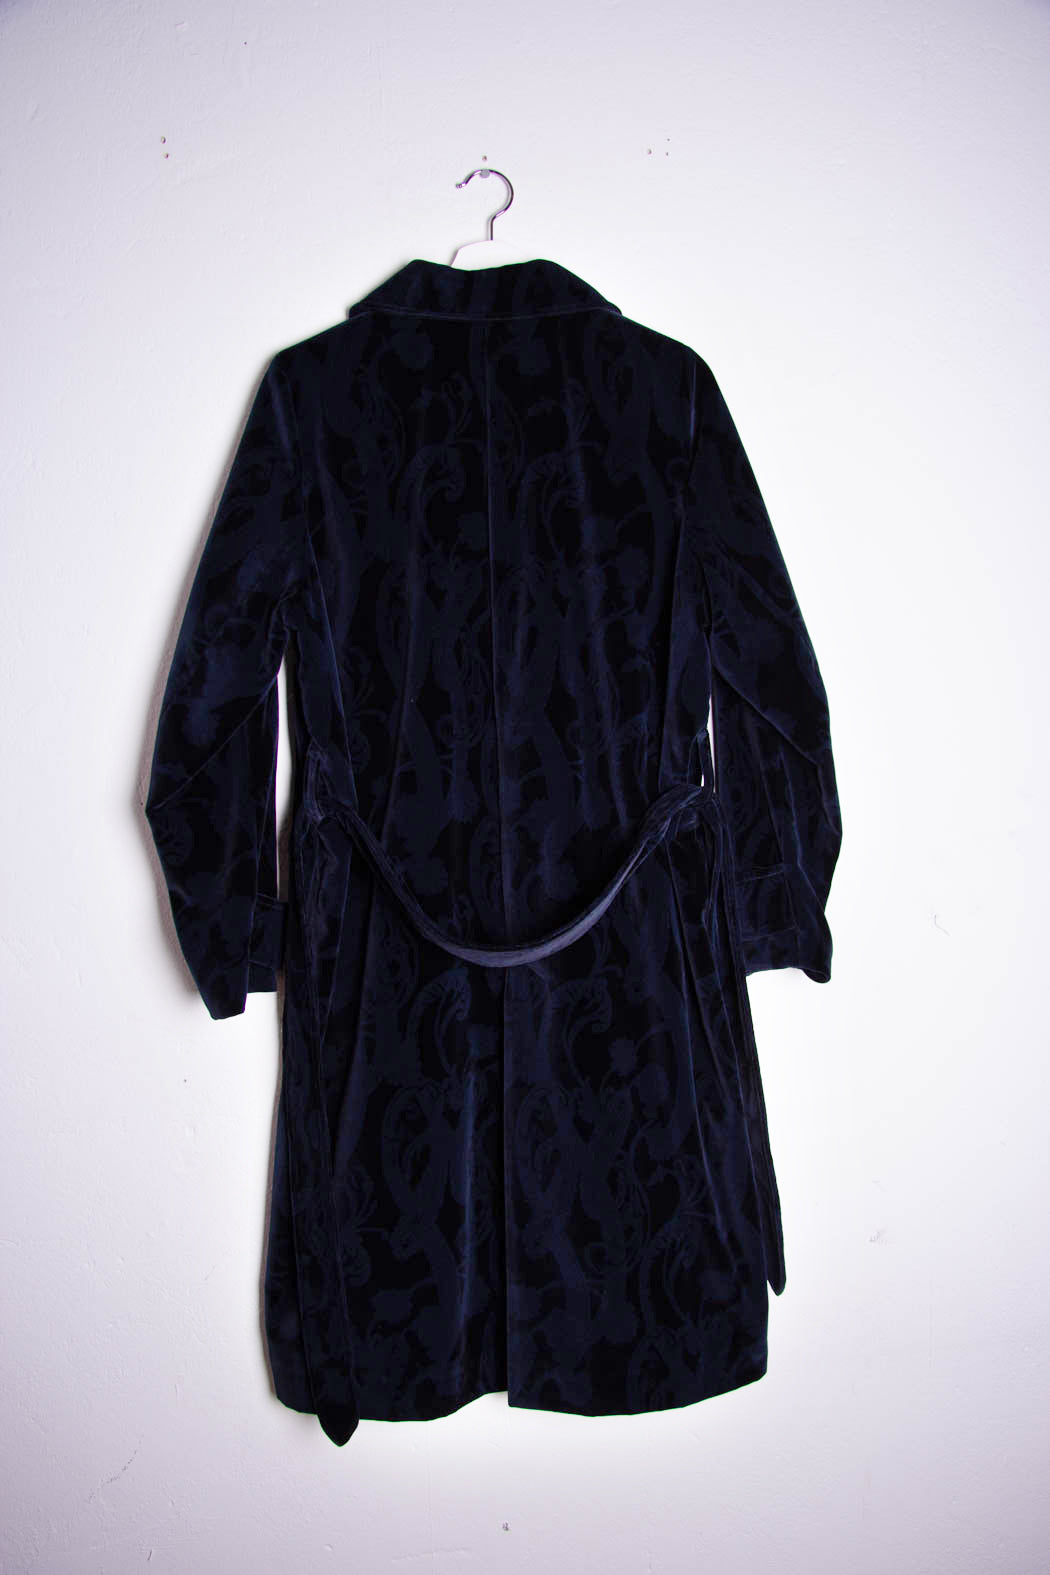 Velvet Paisley Coat (women's)